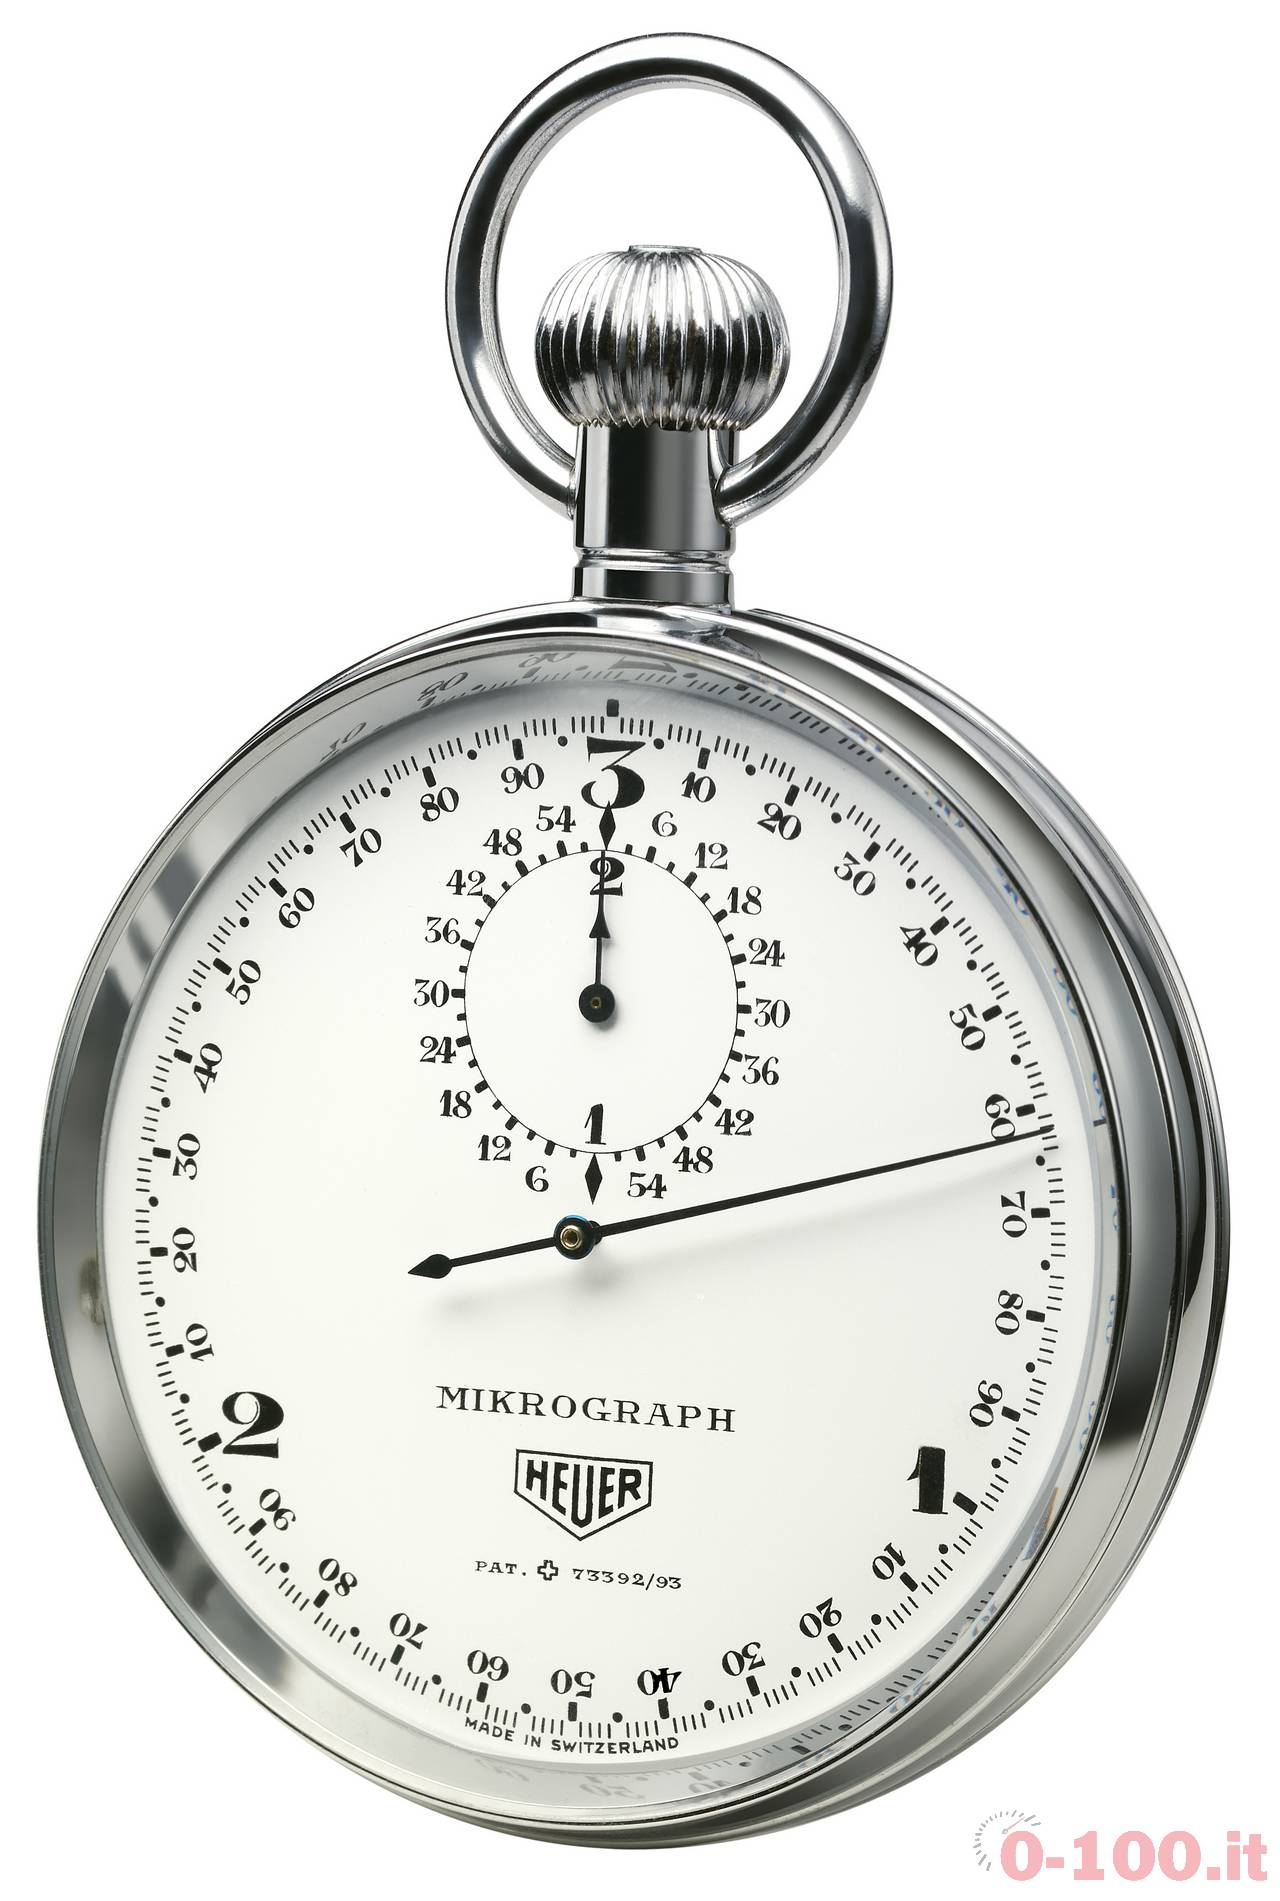 1916_Mikrograph_tag-heuer-0-100